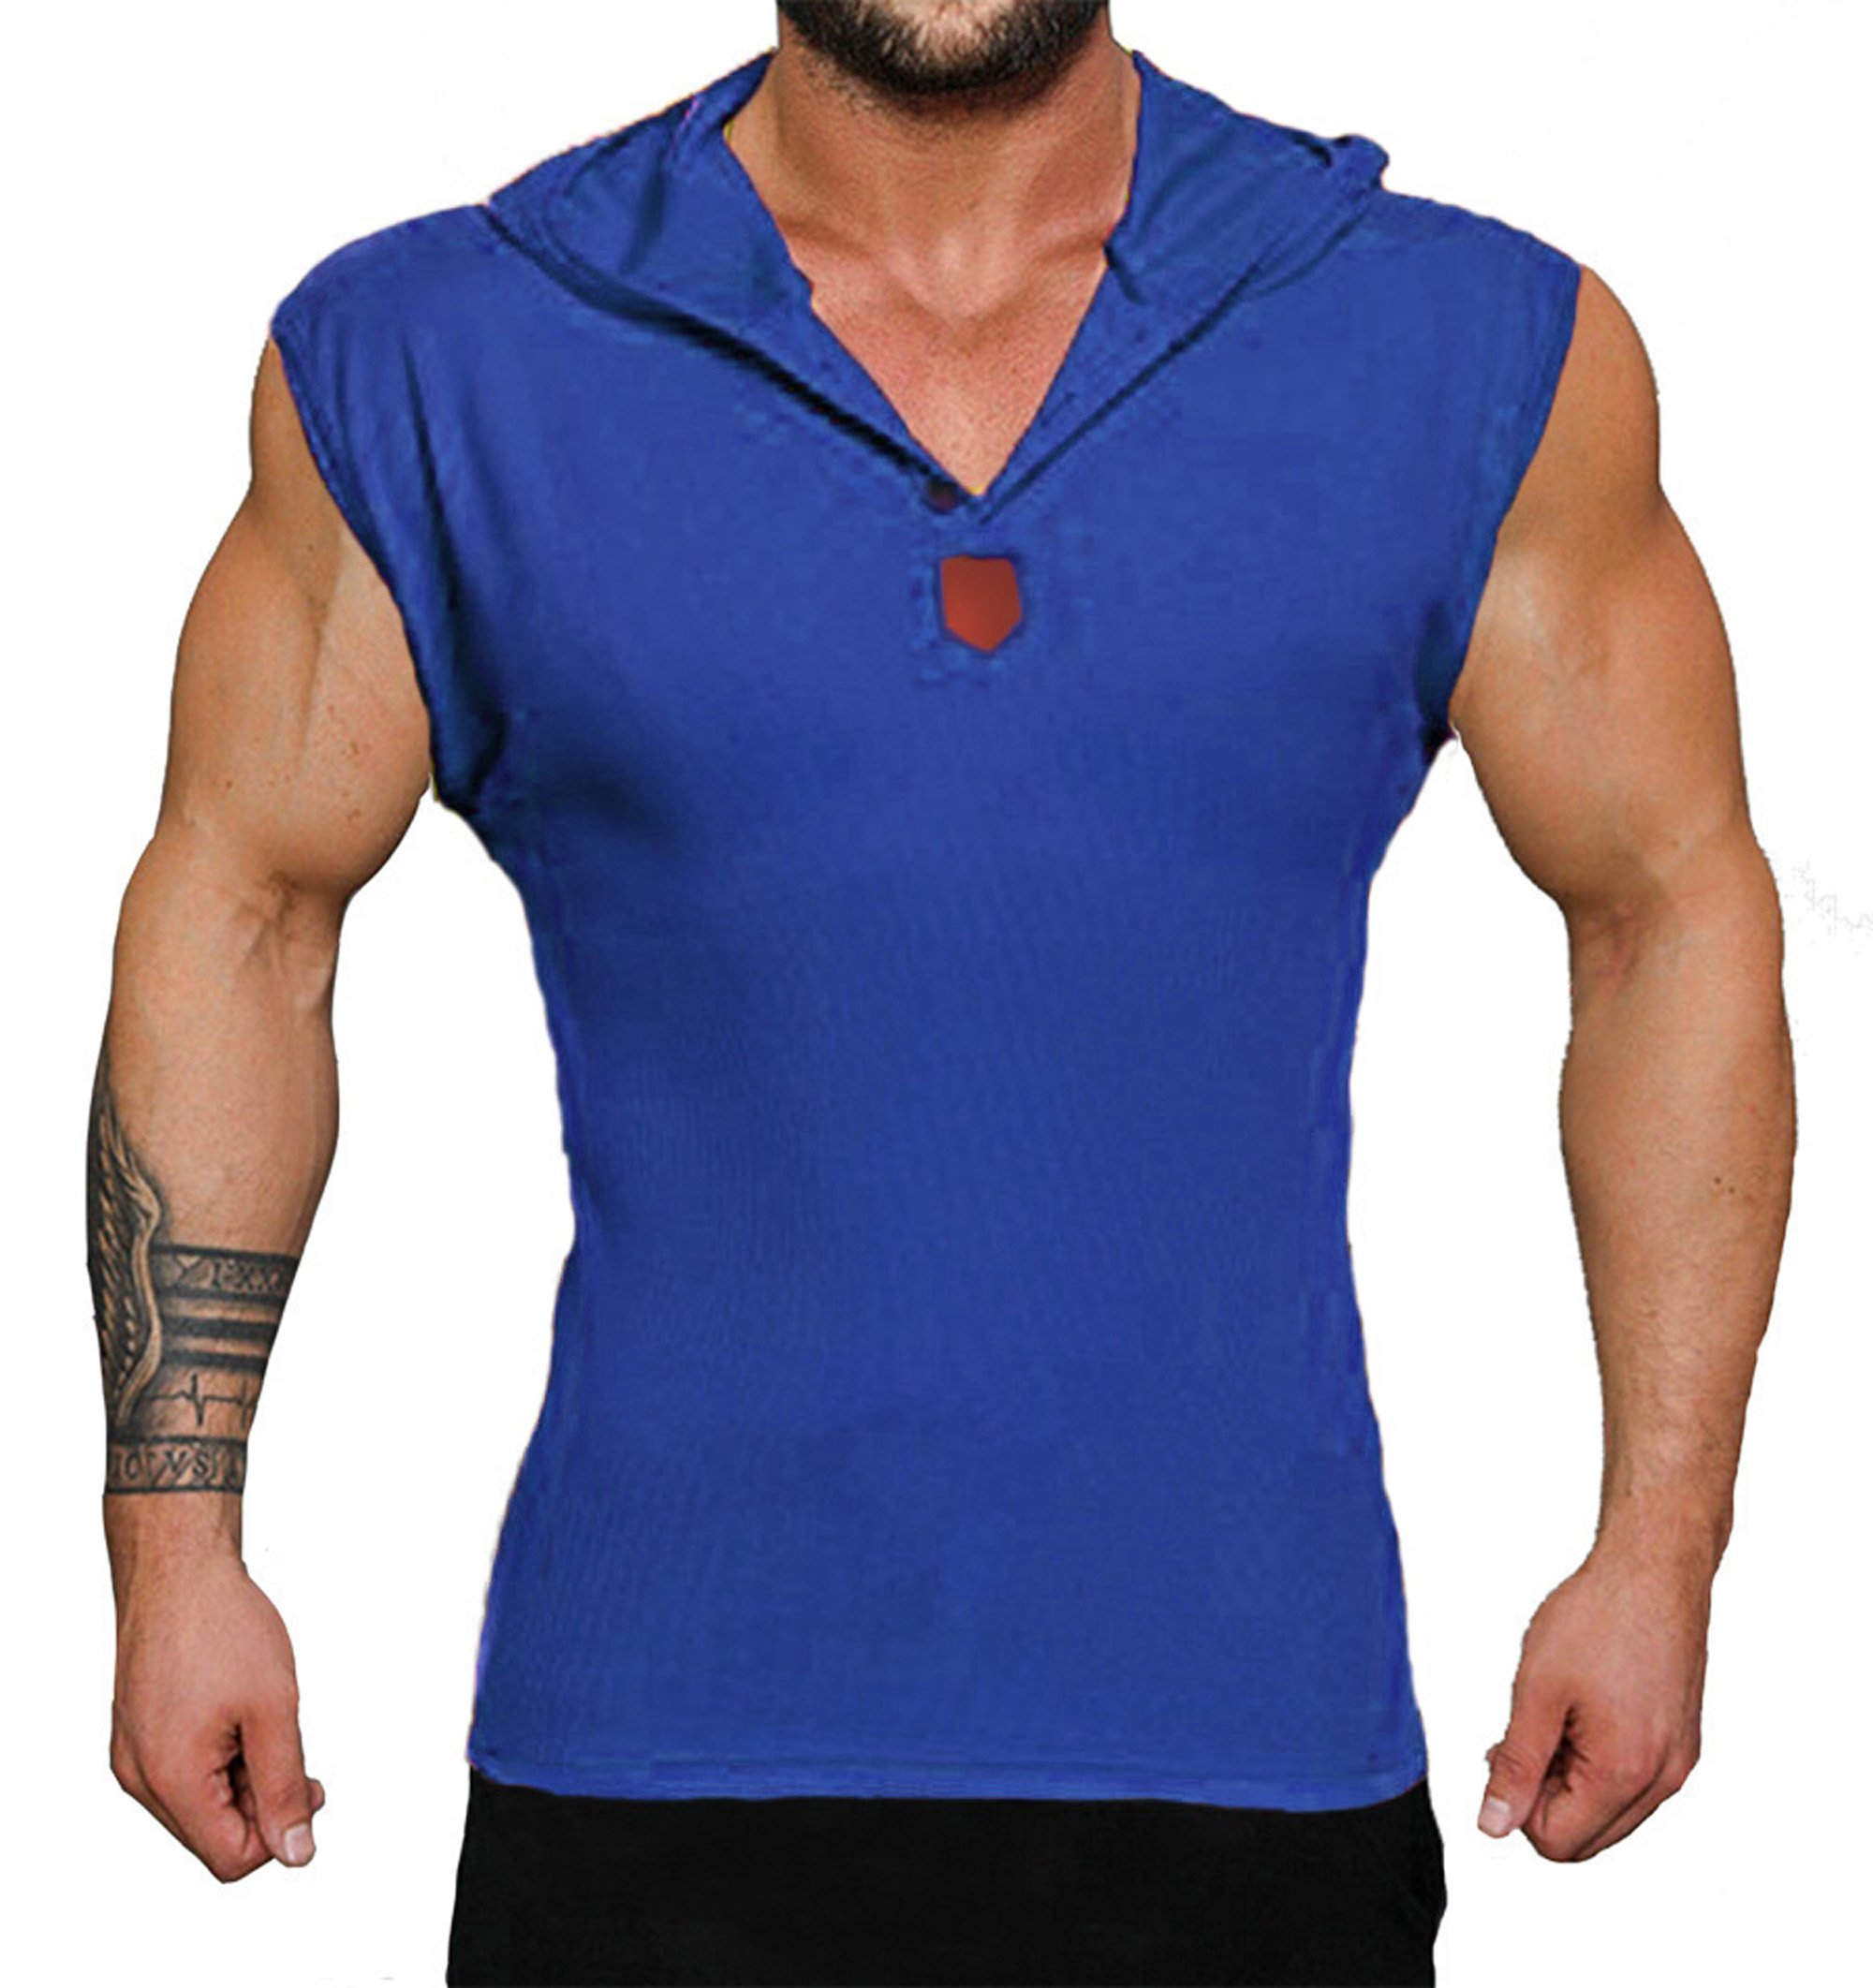 0434ca842e6b1 Best Rated in Men s Sports Tank Tops   Helpful Customer Reviews ...